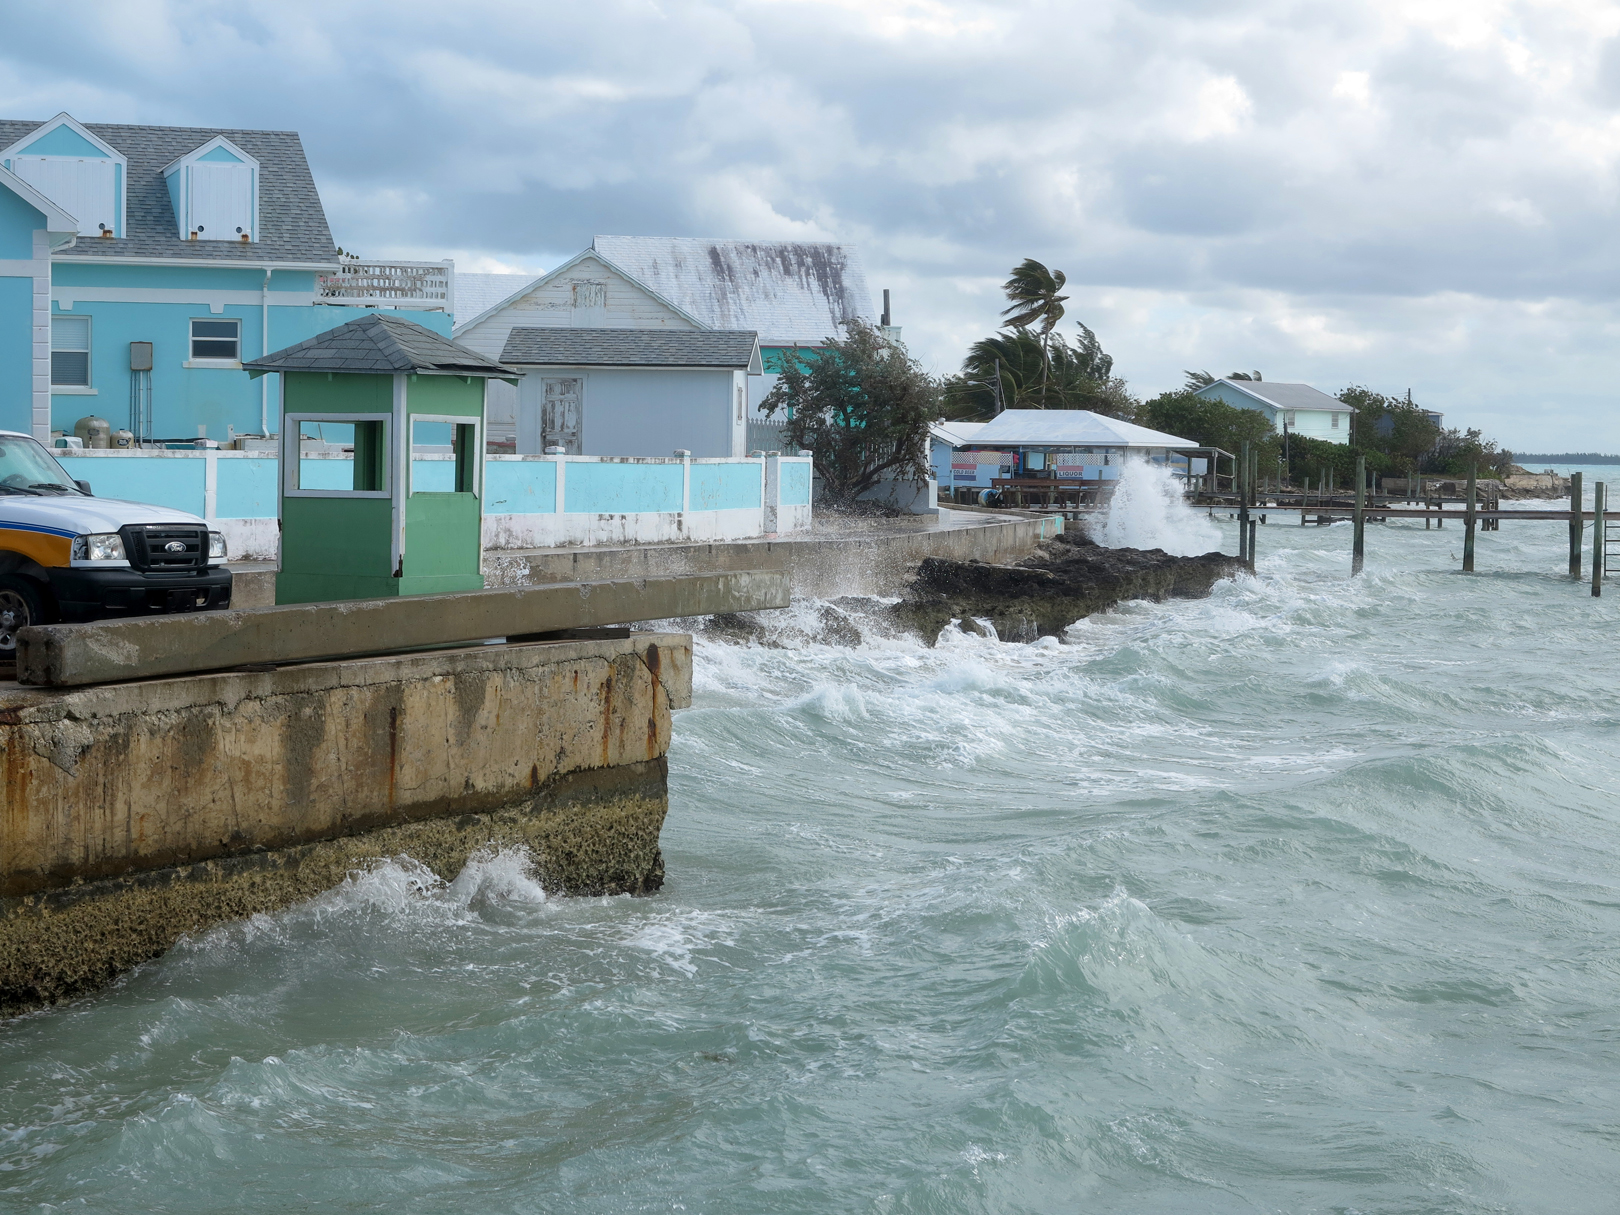 Windy day in Green Turtle Cay, Abaco, Bahamas